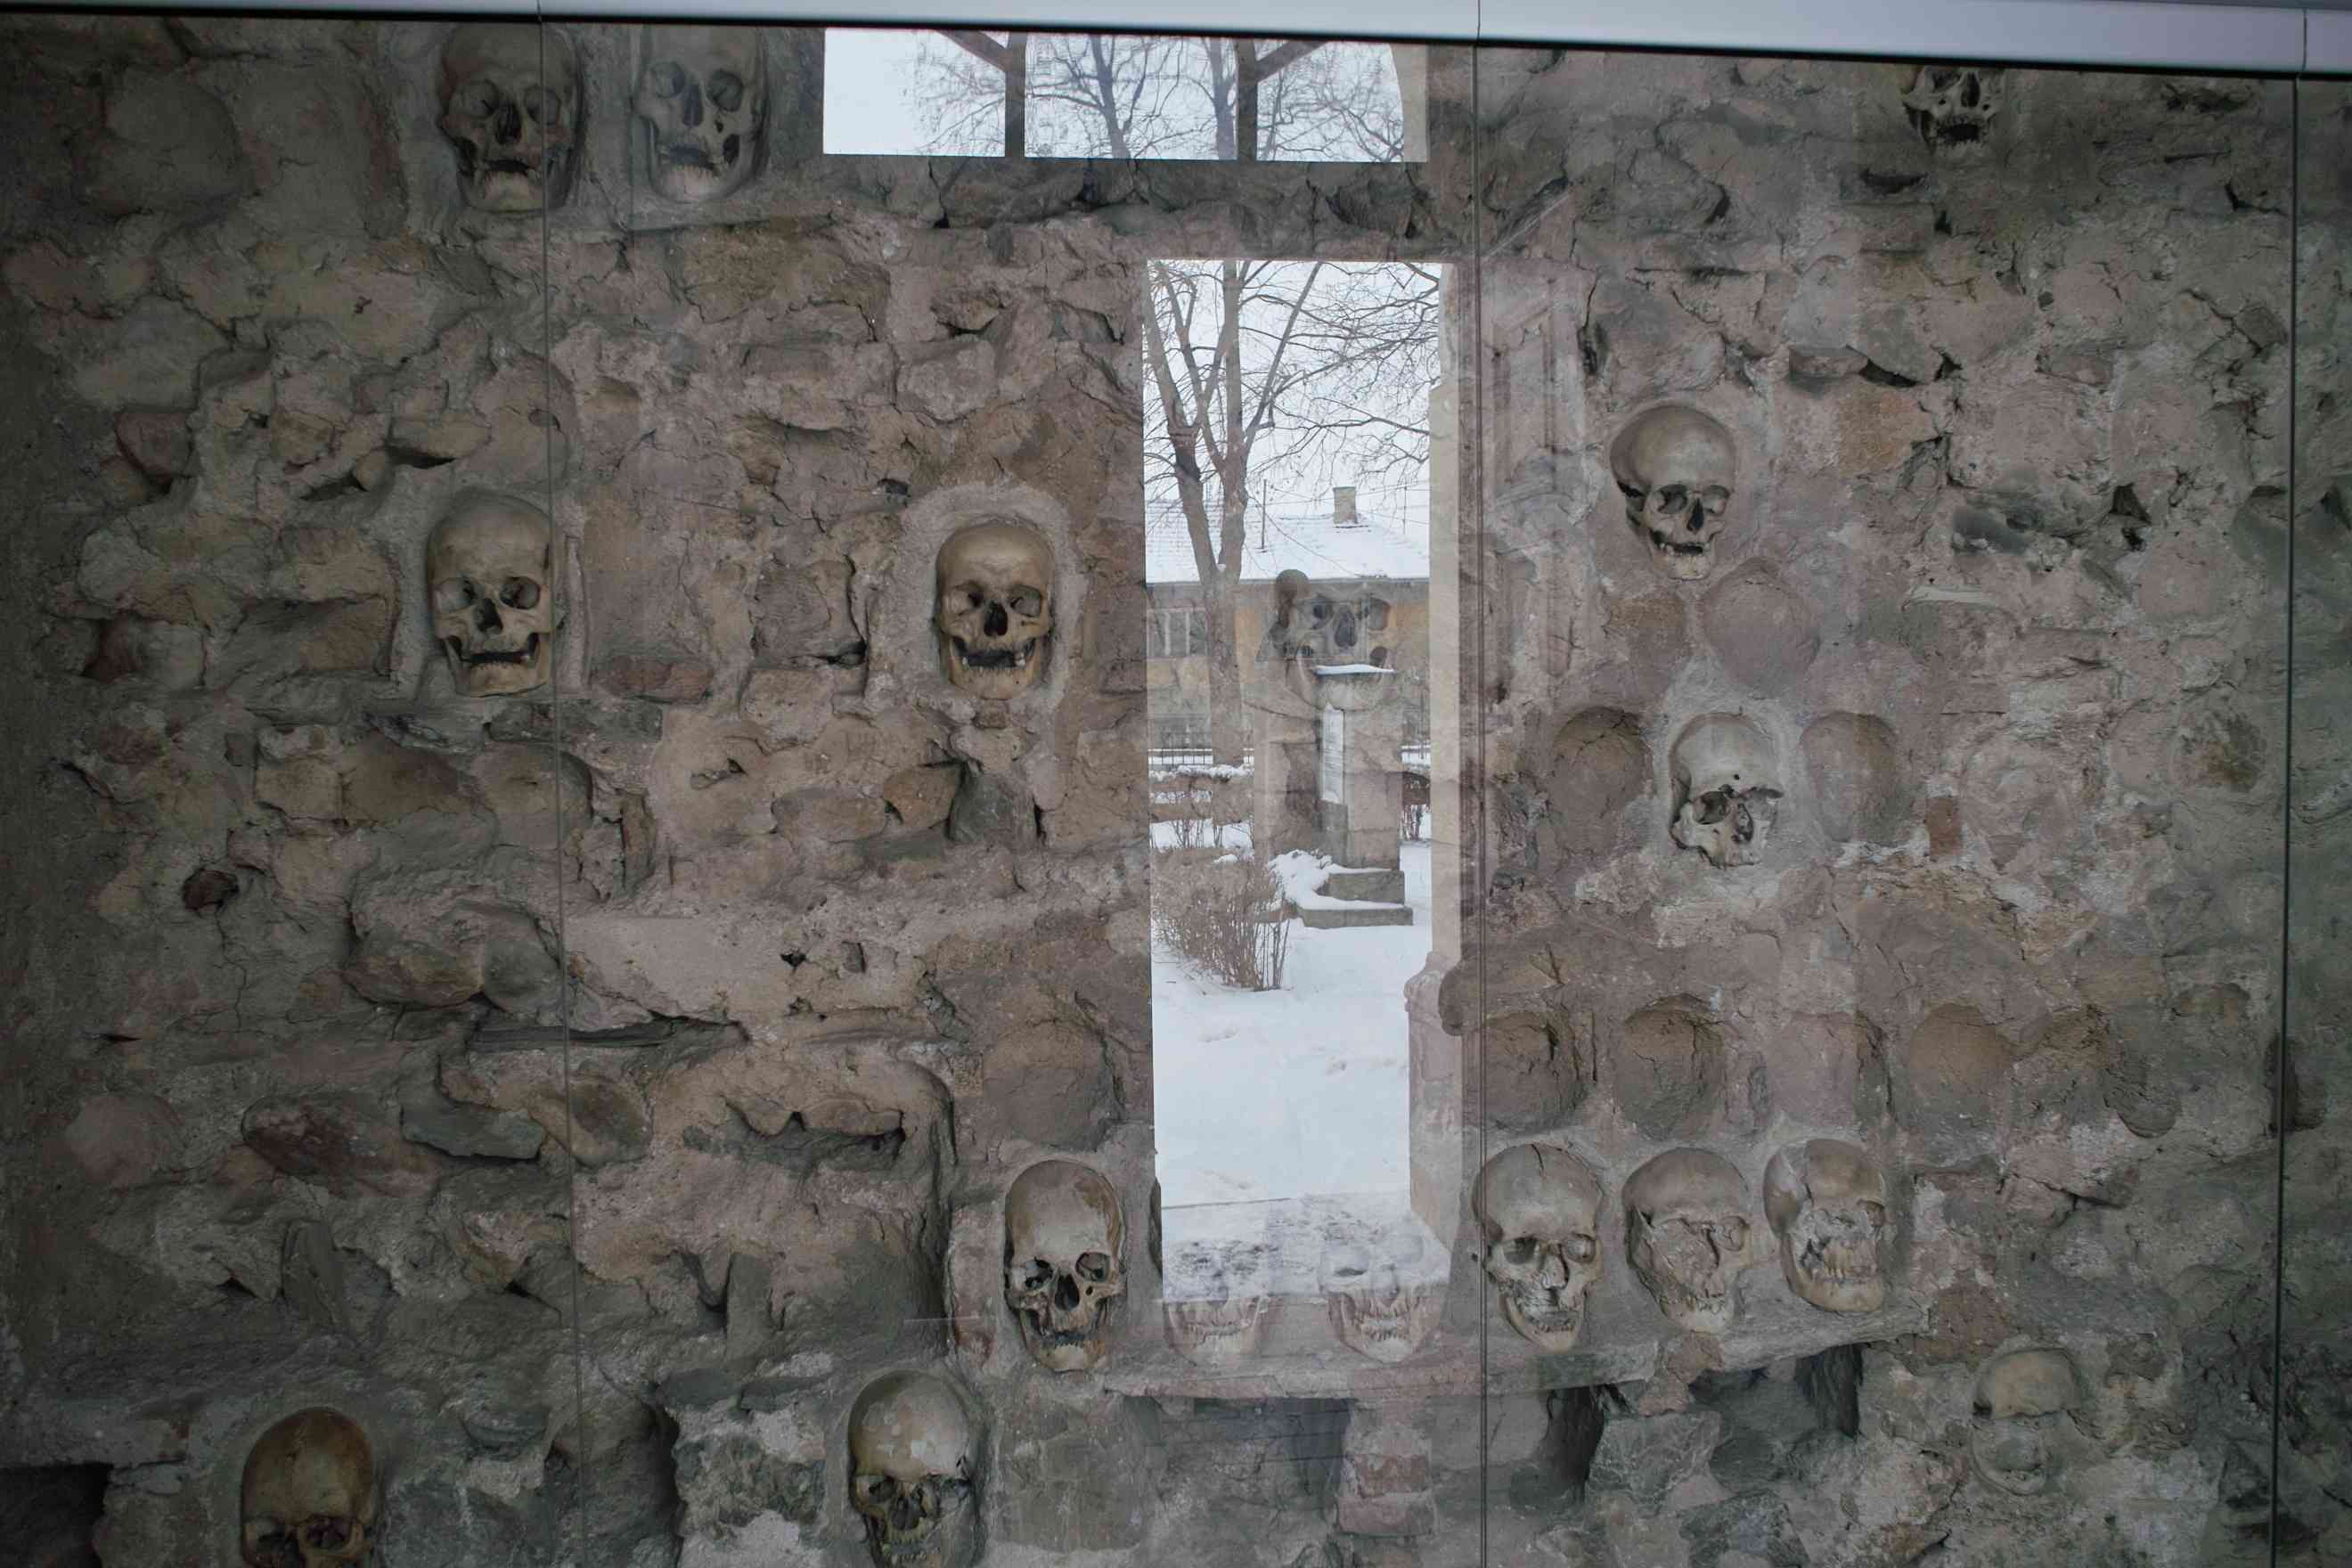 Skulls embedded within the wall of Skull Tower in Nis, Siberia